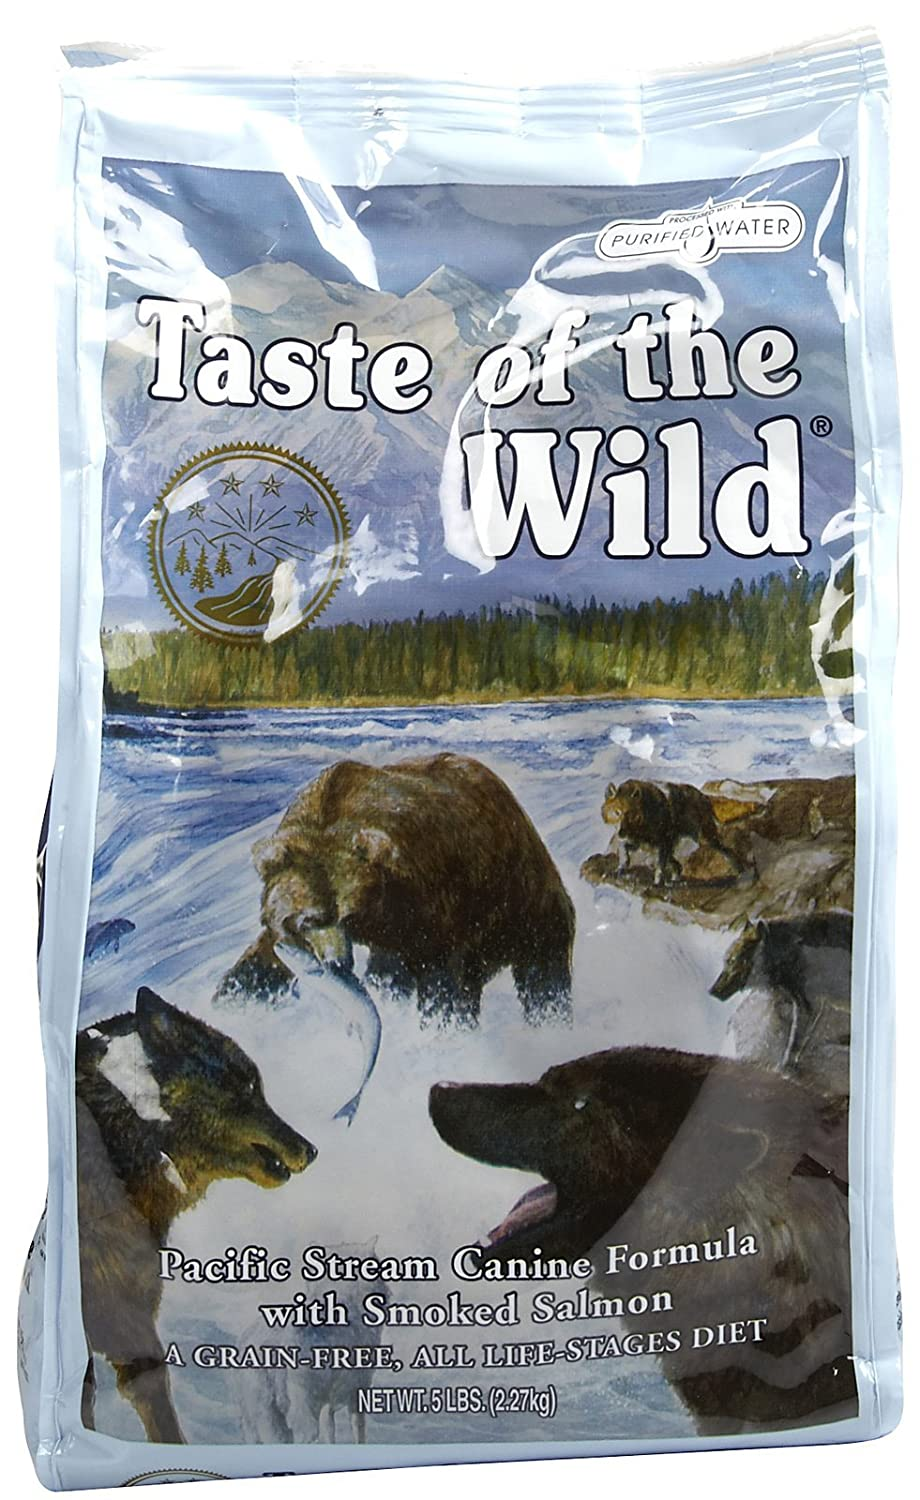 Taste of the Wild Pacific Stream Canine - Smoked Salmon - 5 lb